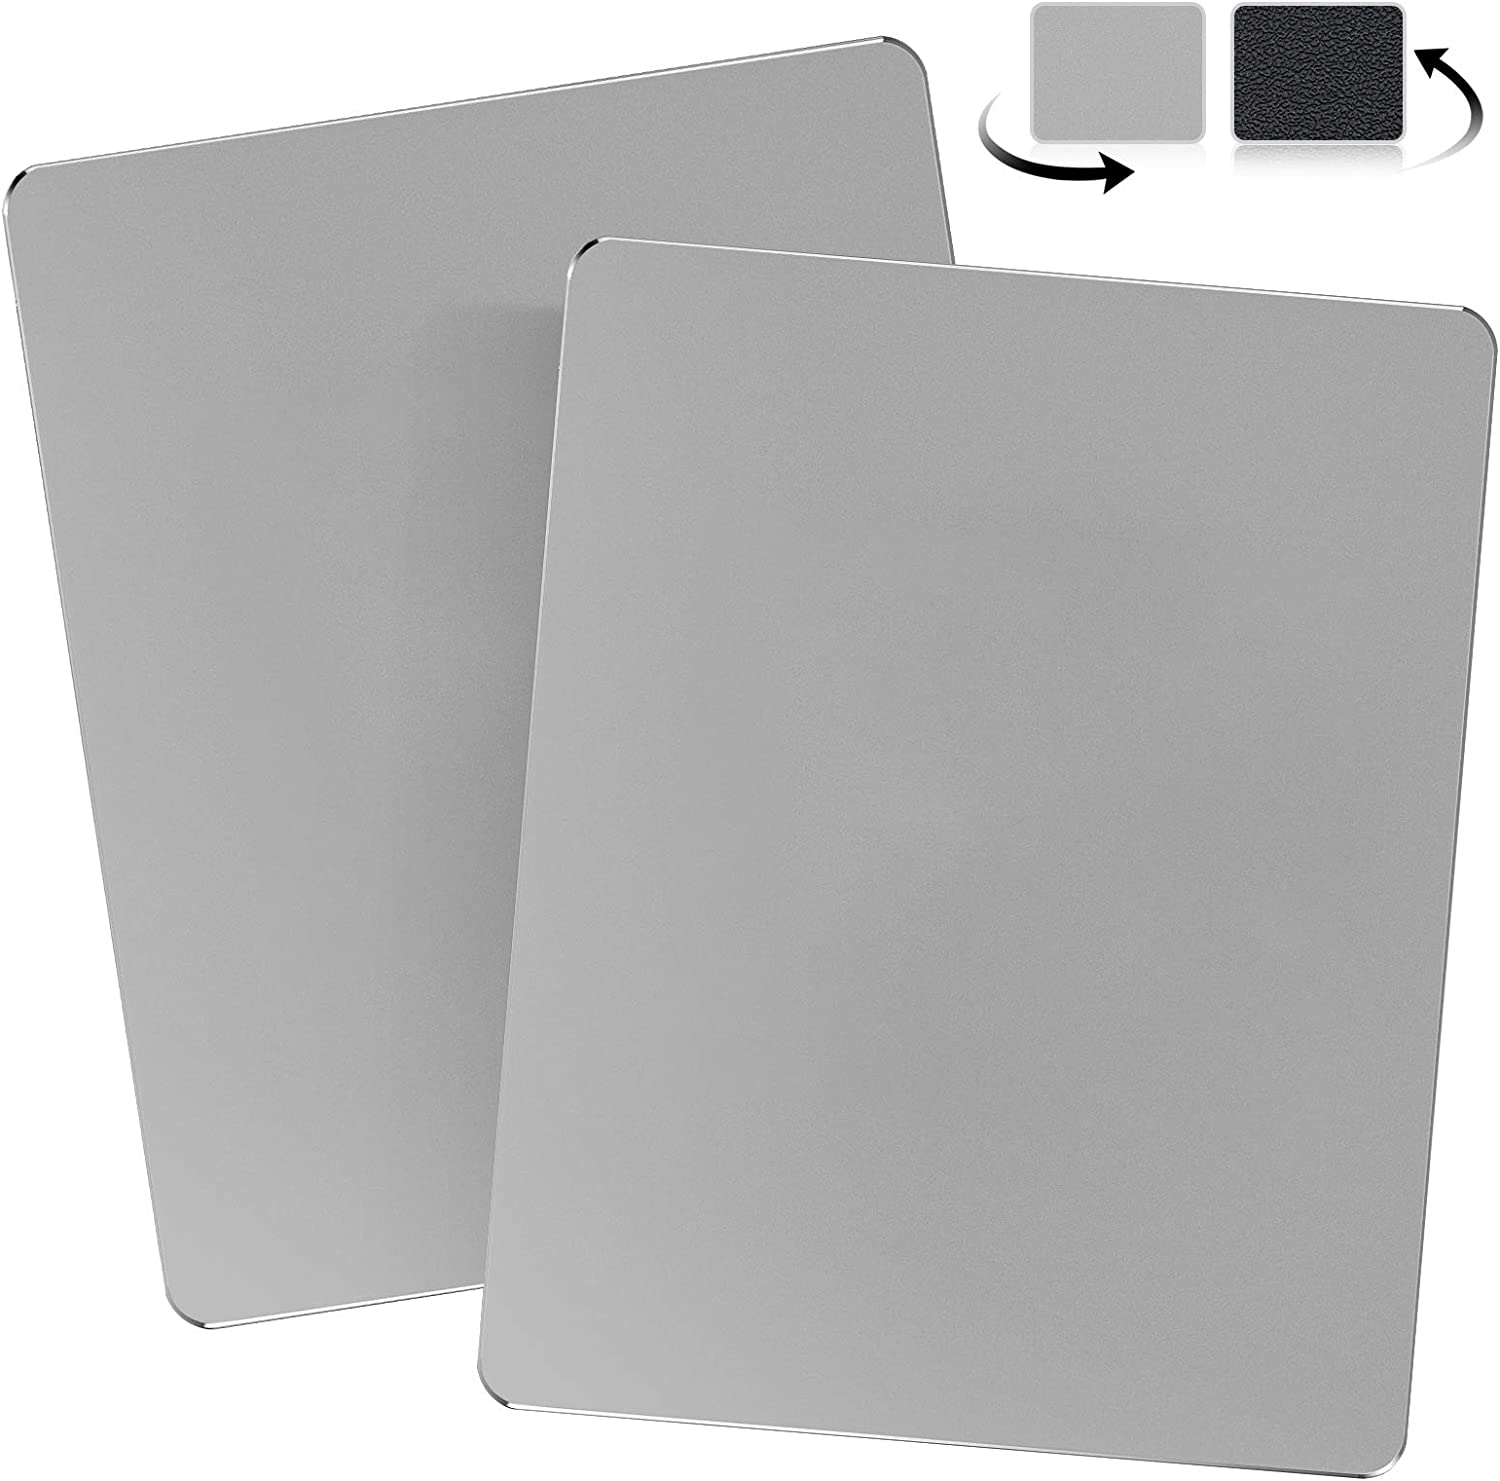 JEDIA 2 Packs Mouse Pad, Gray Premium Hard Metal Aluminum Mouse Pad, Ultra Smooth Double Side Waterproof Fast and Accurate Control Mousepad for Gaming, Office and Home, 9.4